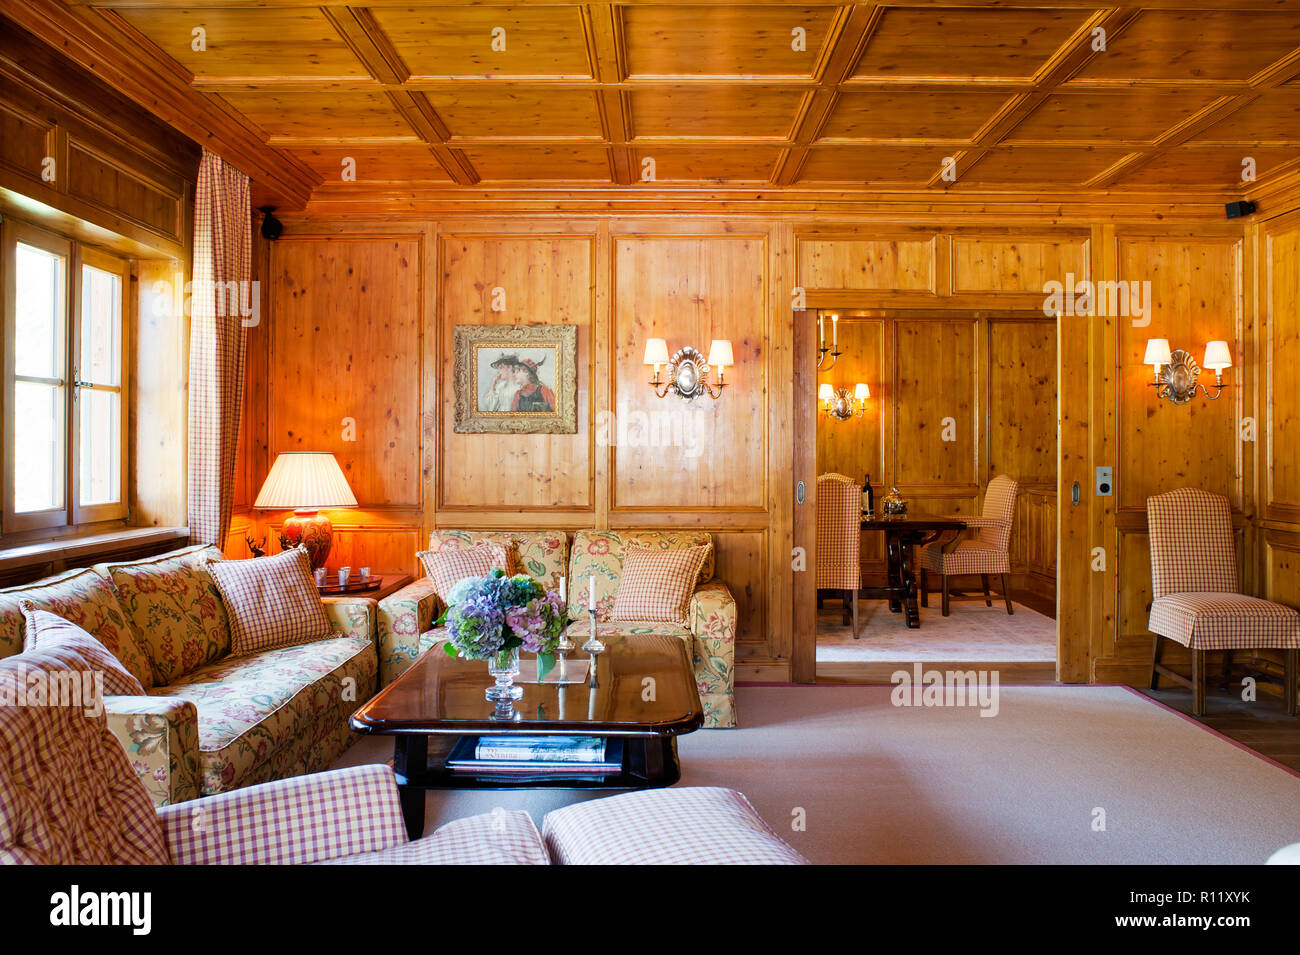 Living Room With Wood Panelling Stock Photo Alamy